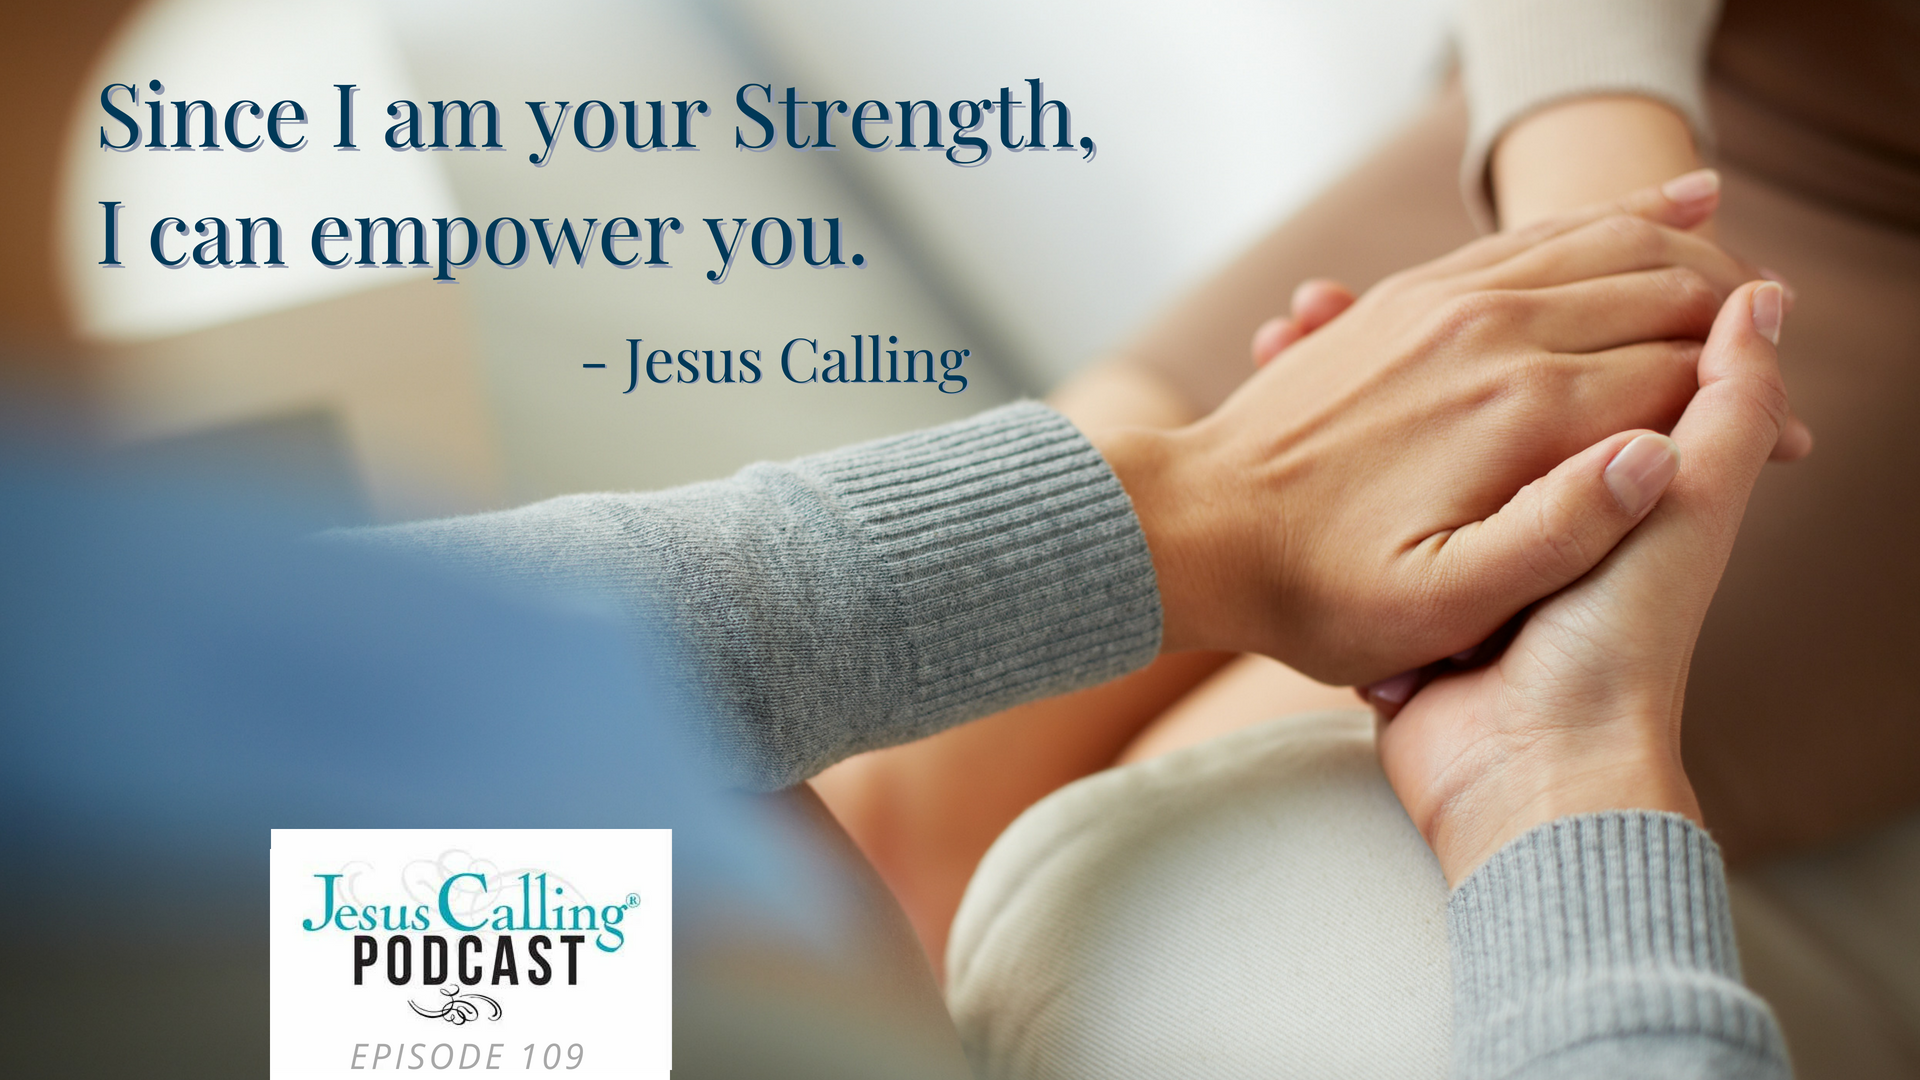 Jesus Calling podcast #109 featuring Scott Hamilton & Rhonda Hodge